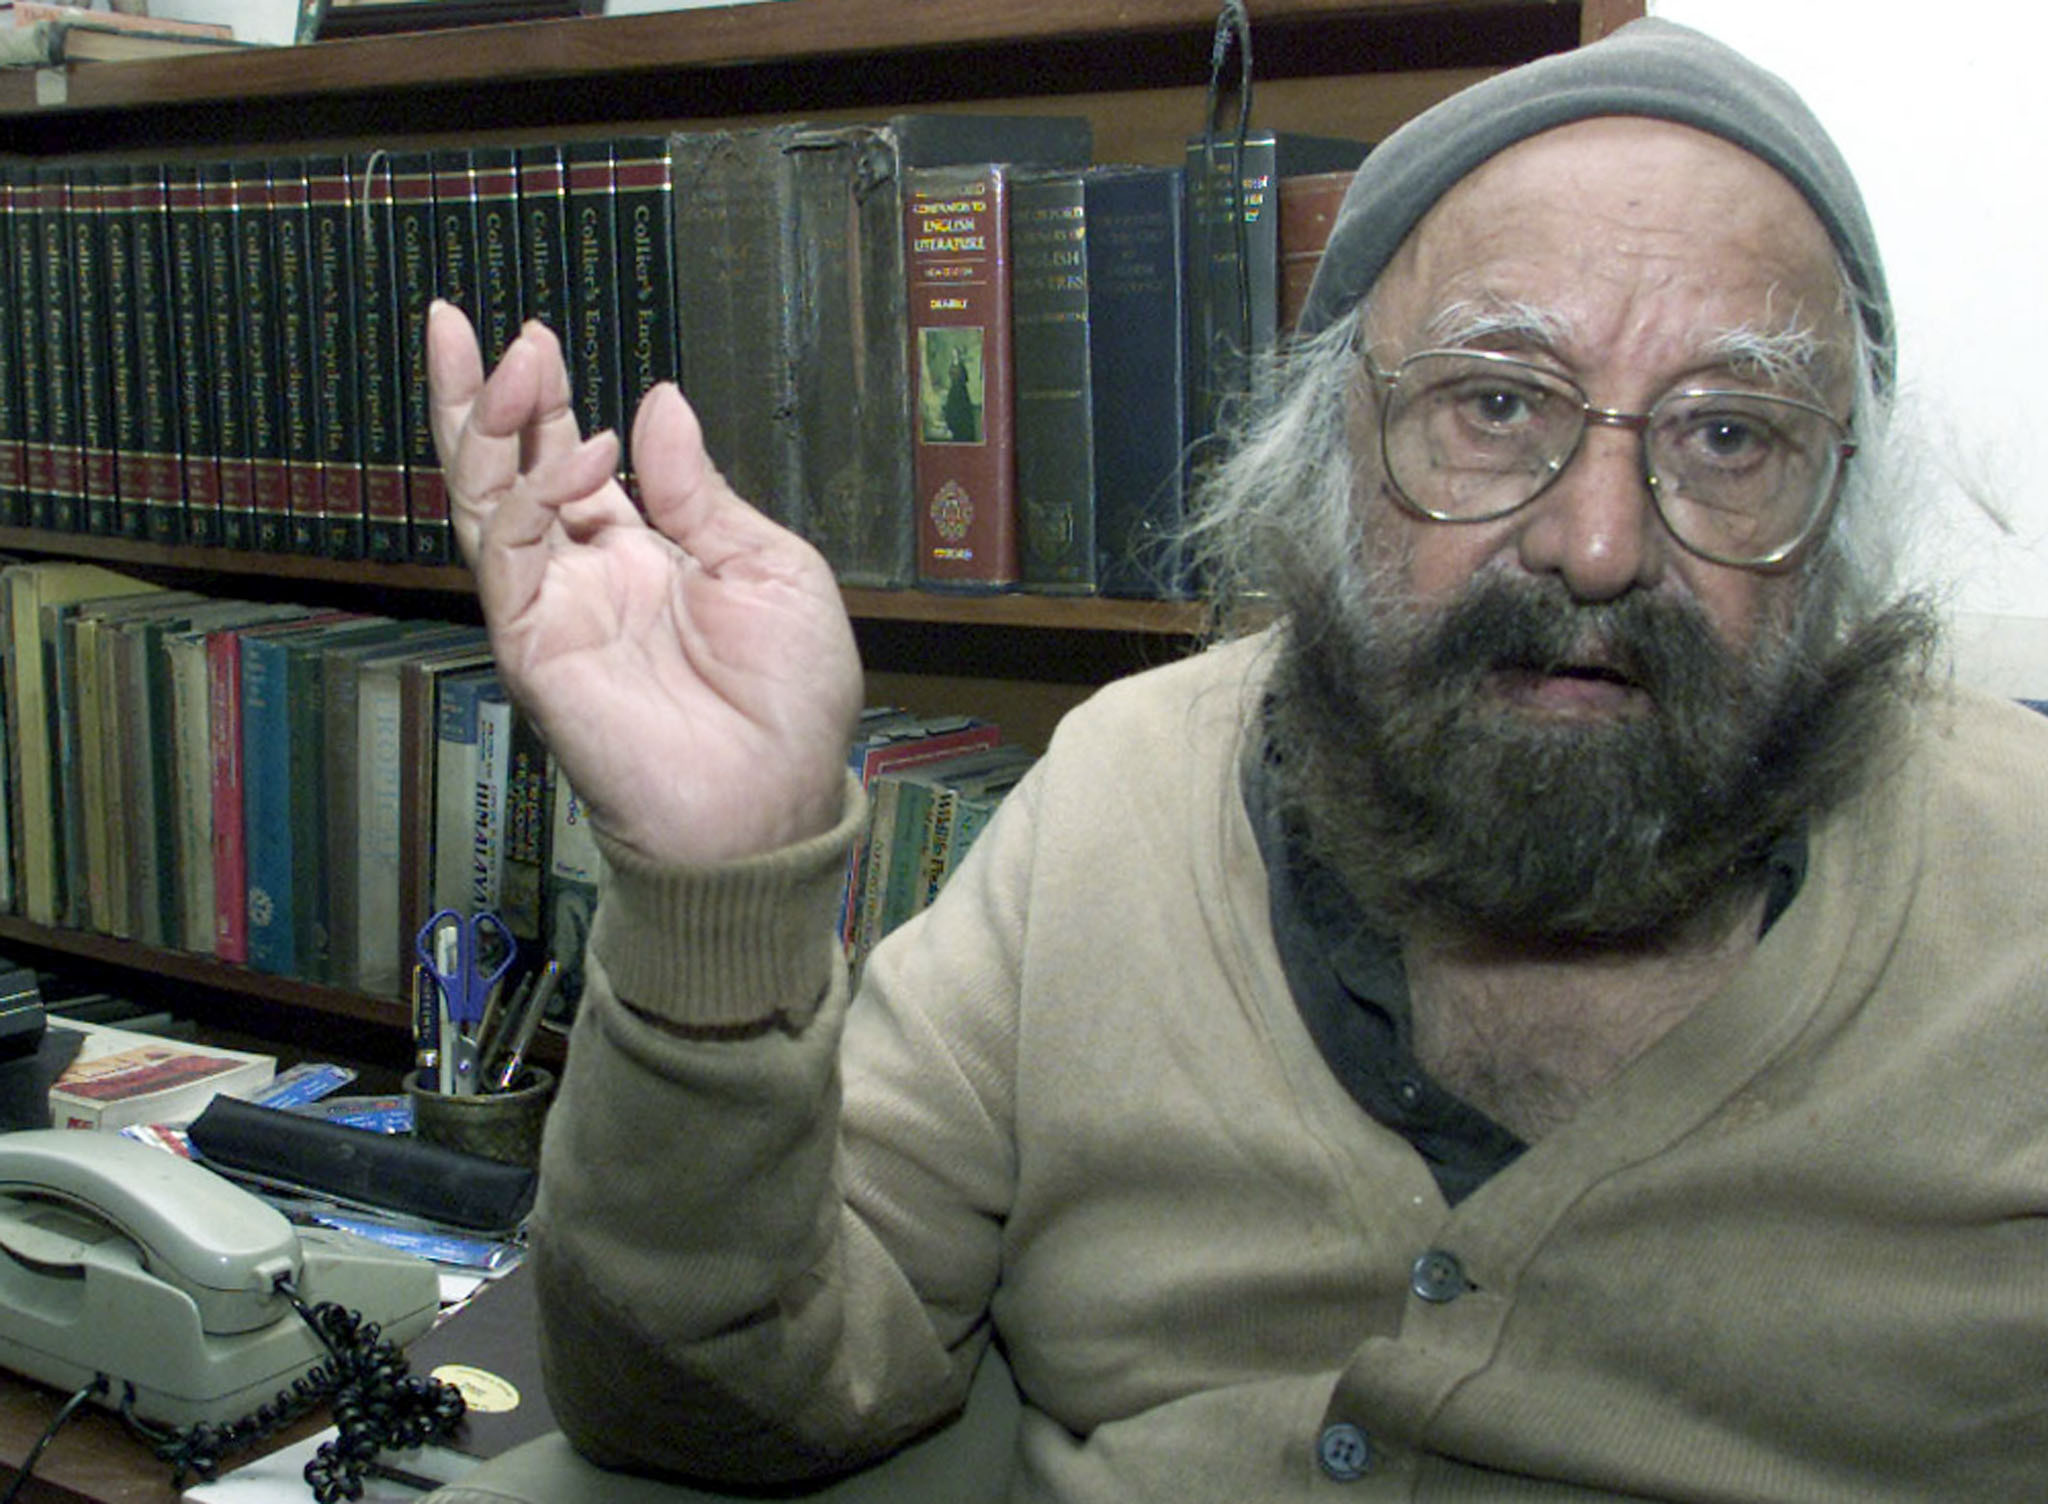 Khushwant Singh, India's best known columnist, speaks to Reuters duringan interview in New Delhi. His friends call him the grand old man ofIndian literature, while critics dismiss him as just dirty old man.Picture taken February 15, 2002. REUTERS/Kamal KishoreJSG/TAN - RP3DRHYLYEAA